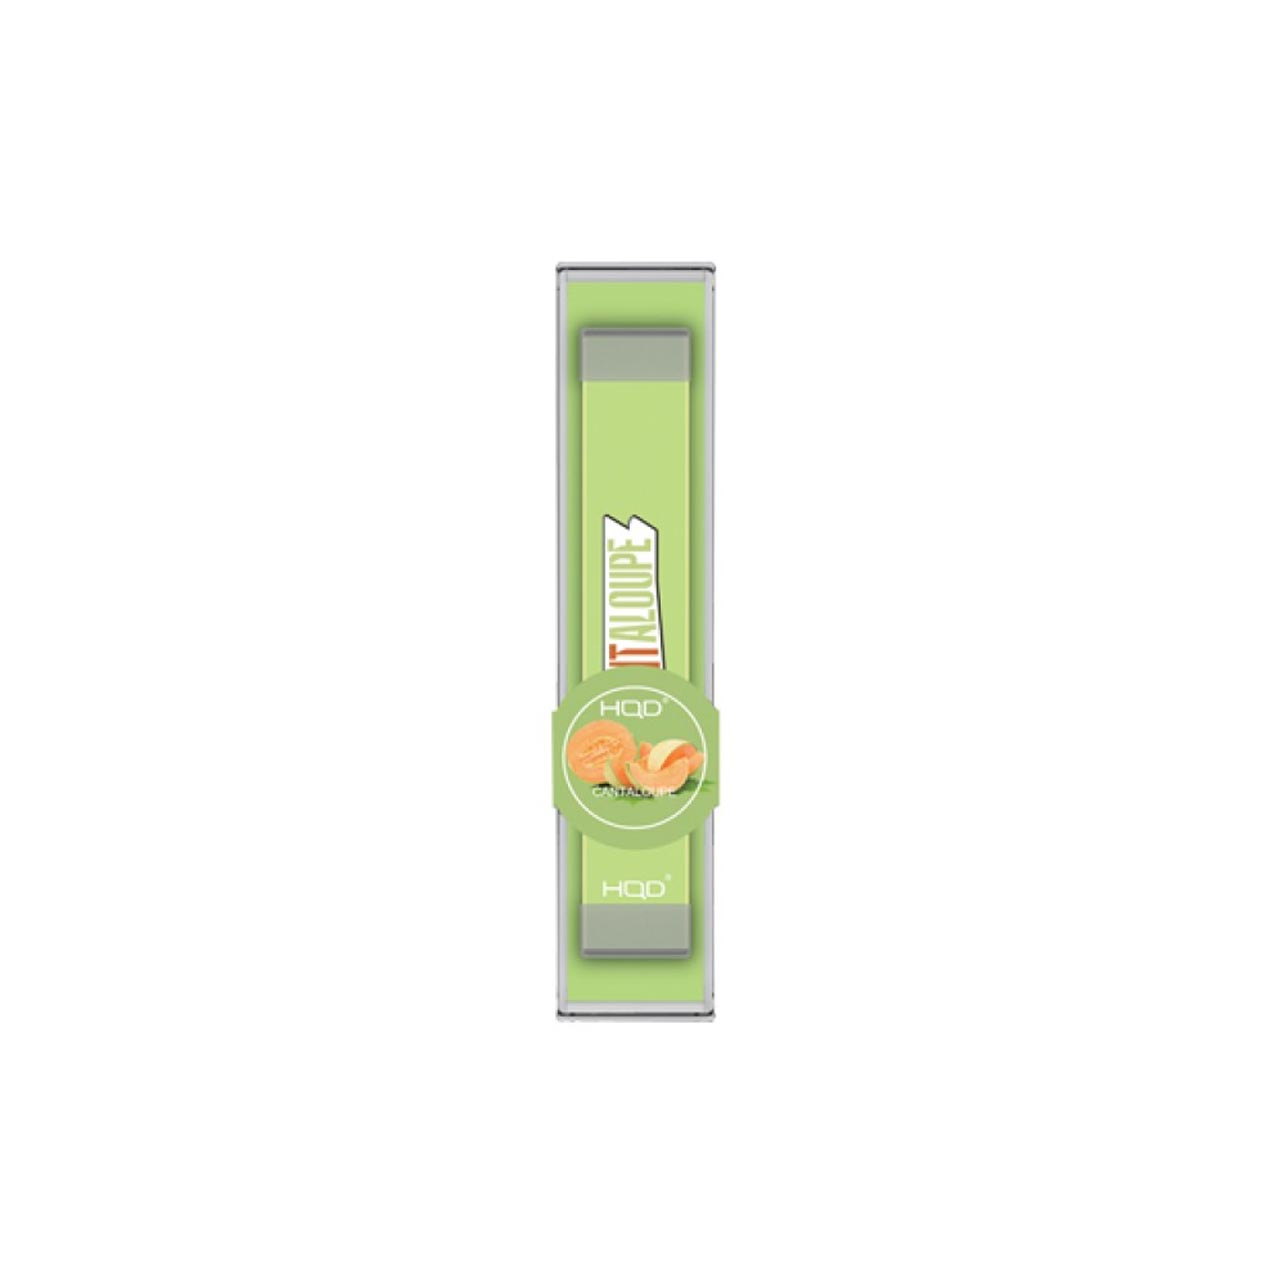 Hqd Stark Cantaloupe Disposable Device Ecigmafia It seems like people mostly love it, though, because you're going to find a huge variety of melon flavors when you browse. hqd stark cantaloupe disposable device pack of 1